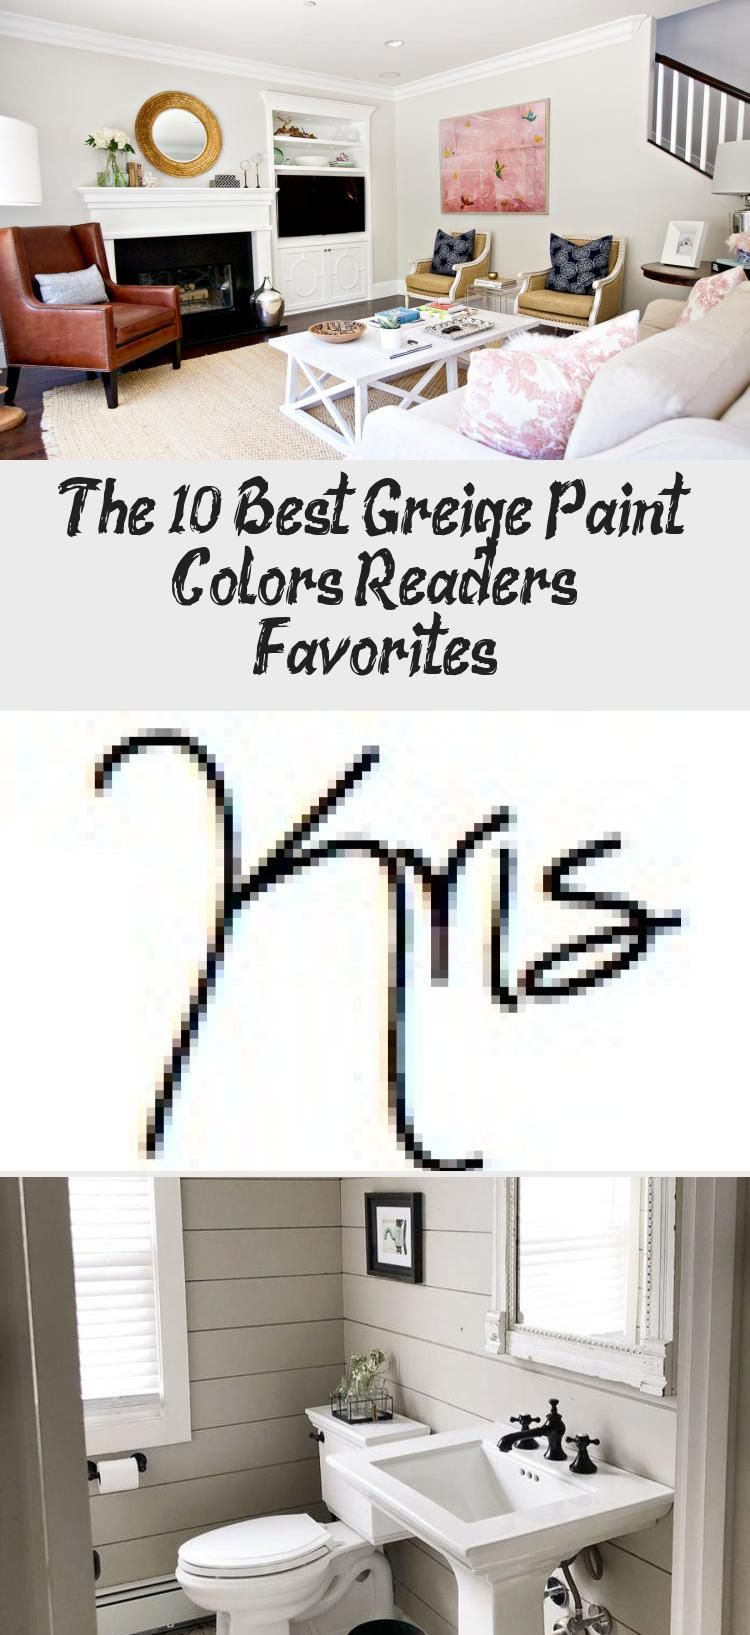 the 10 best greige paint colors readers favorites in on 10 most popular paint colors id=24110